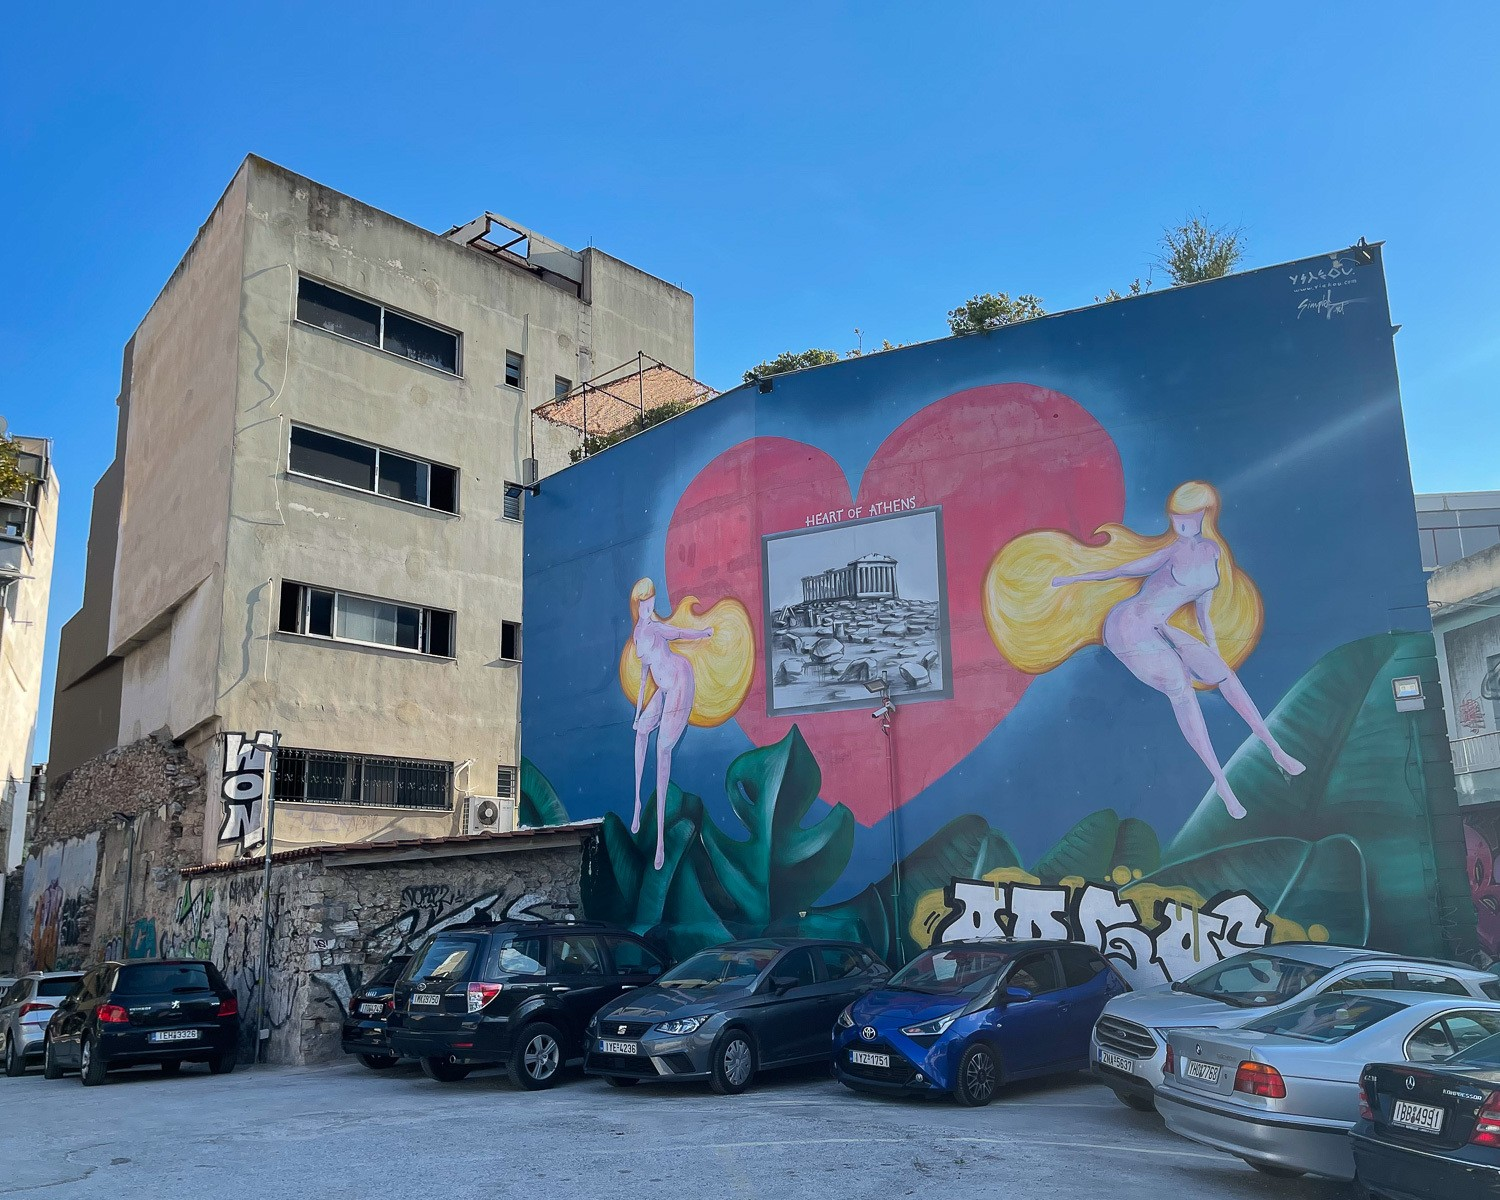 Mural in Psiri Athens - Heart of Athens by Yiakou and Simple G Photo Heatheronhertravels.com